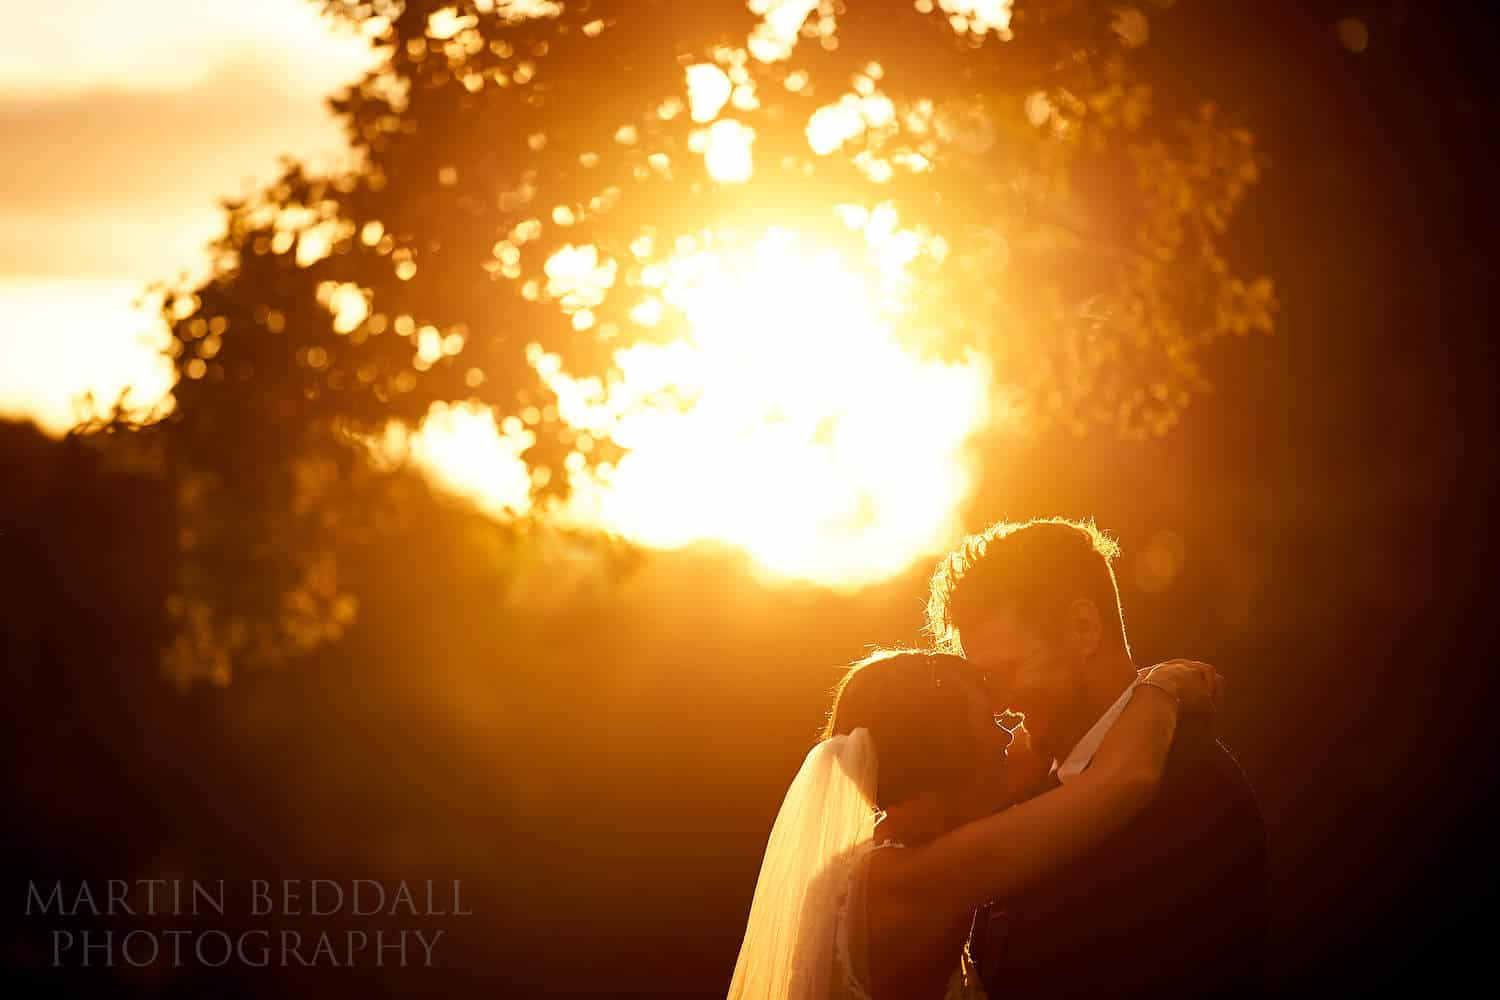 Sunset portrait of the bride and groom at Oak Barn wedding